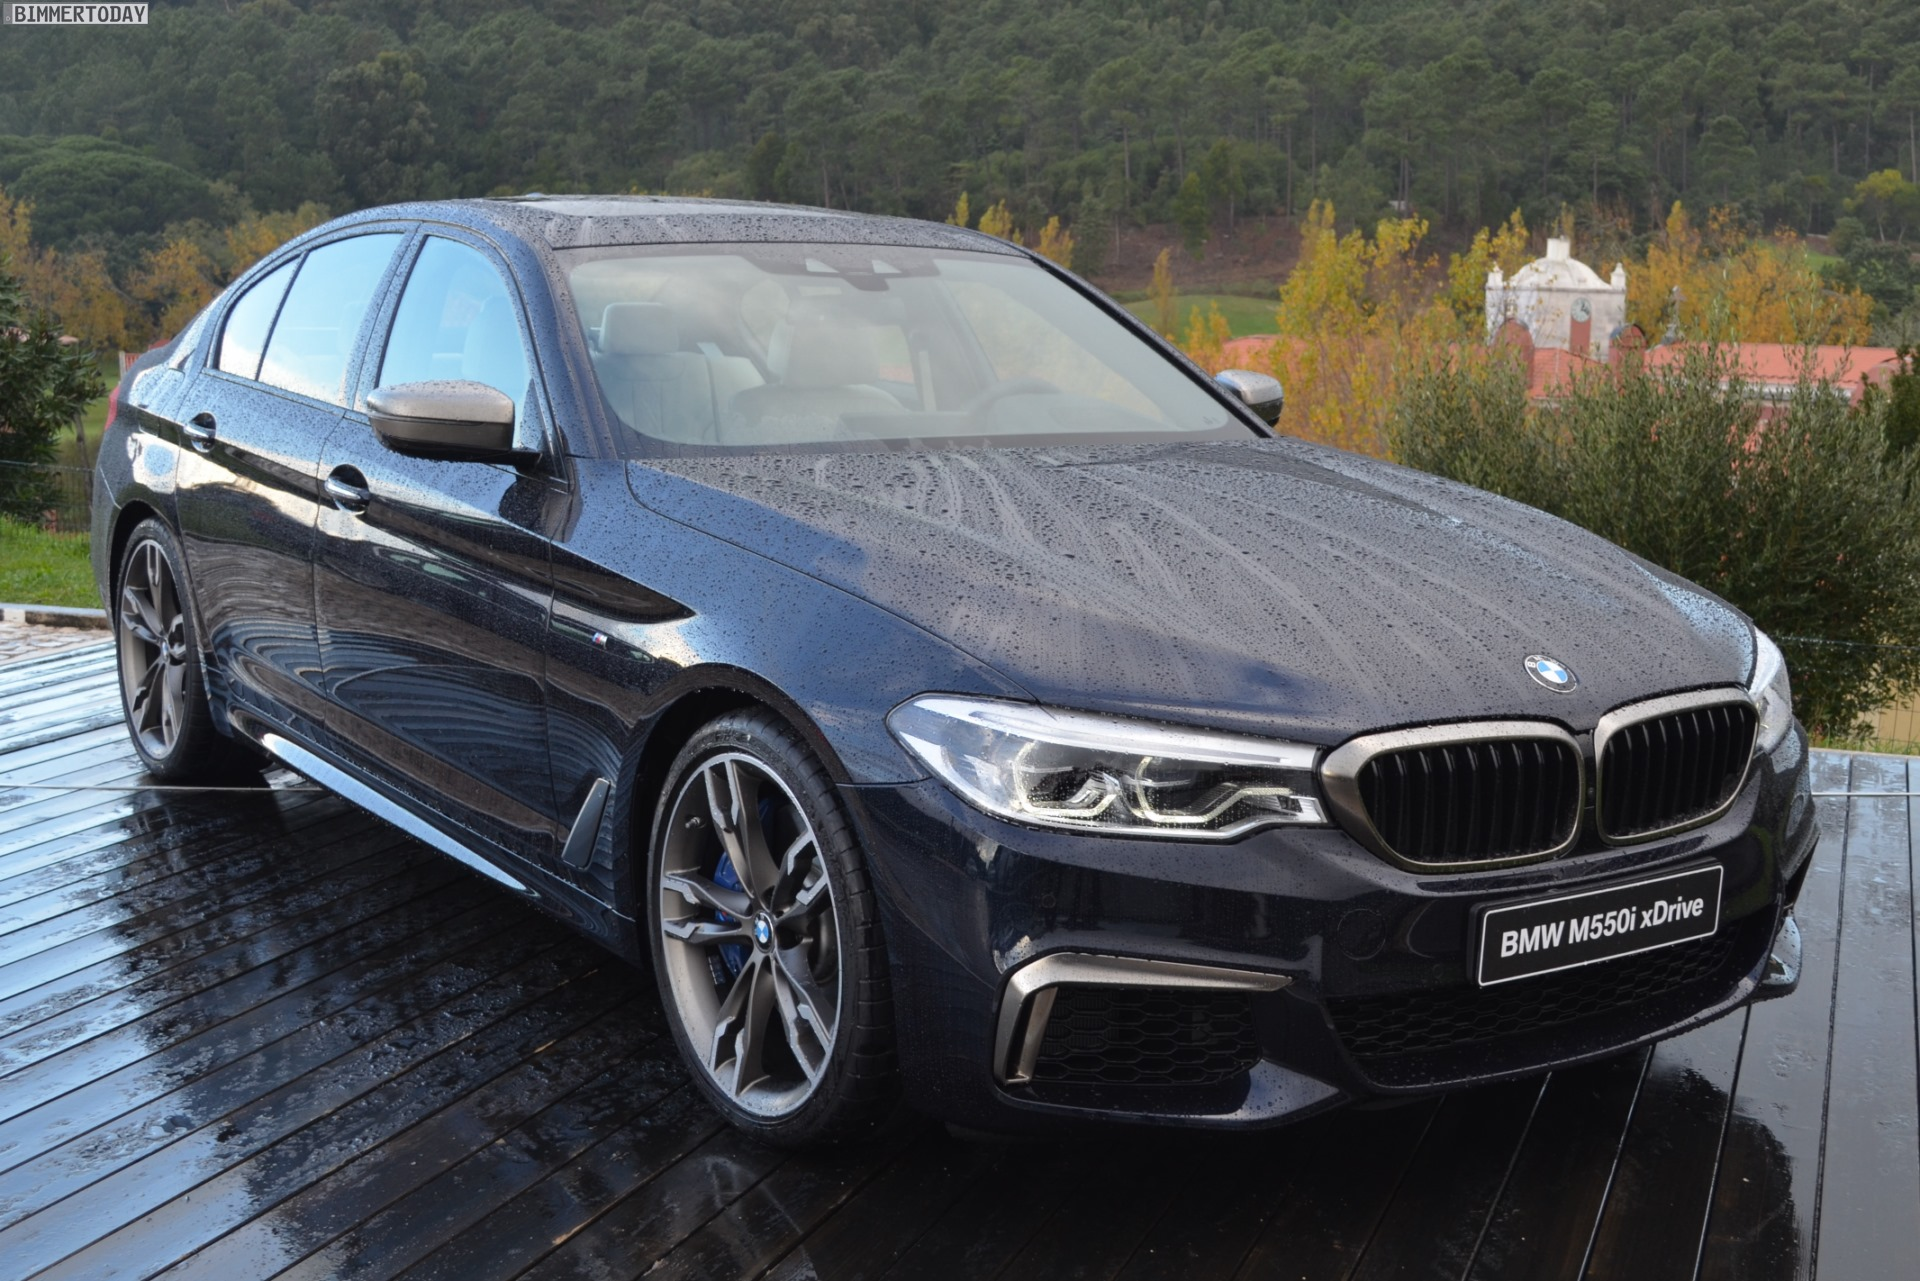 Live Pics Of Bmw M550i Update New Pics On Page 4